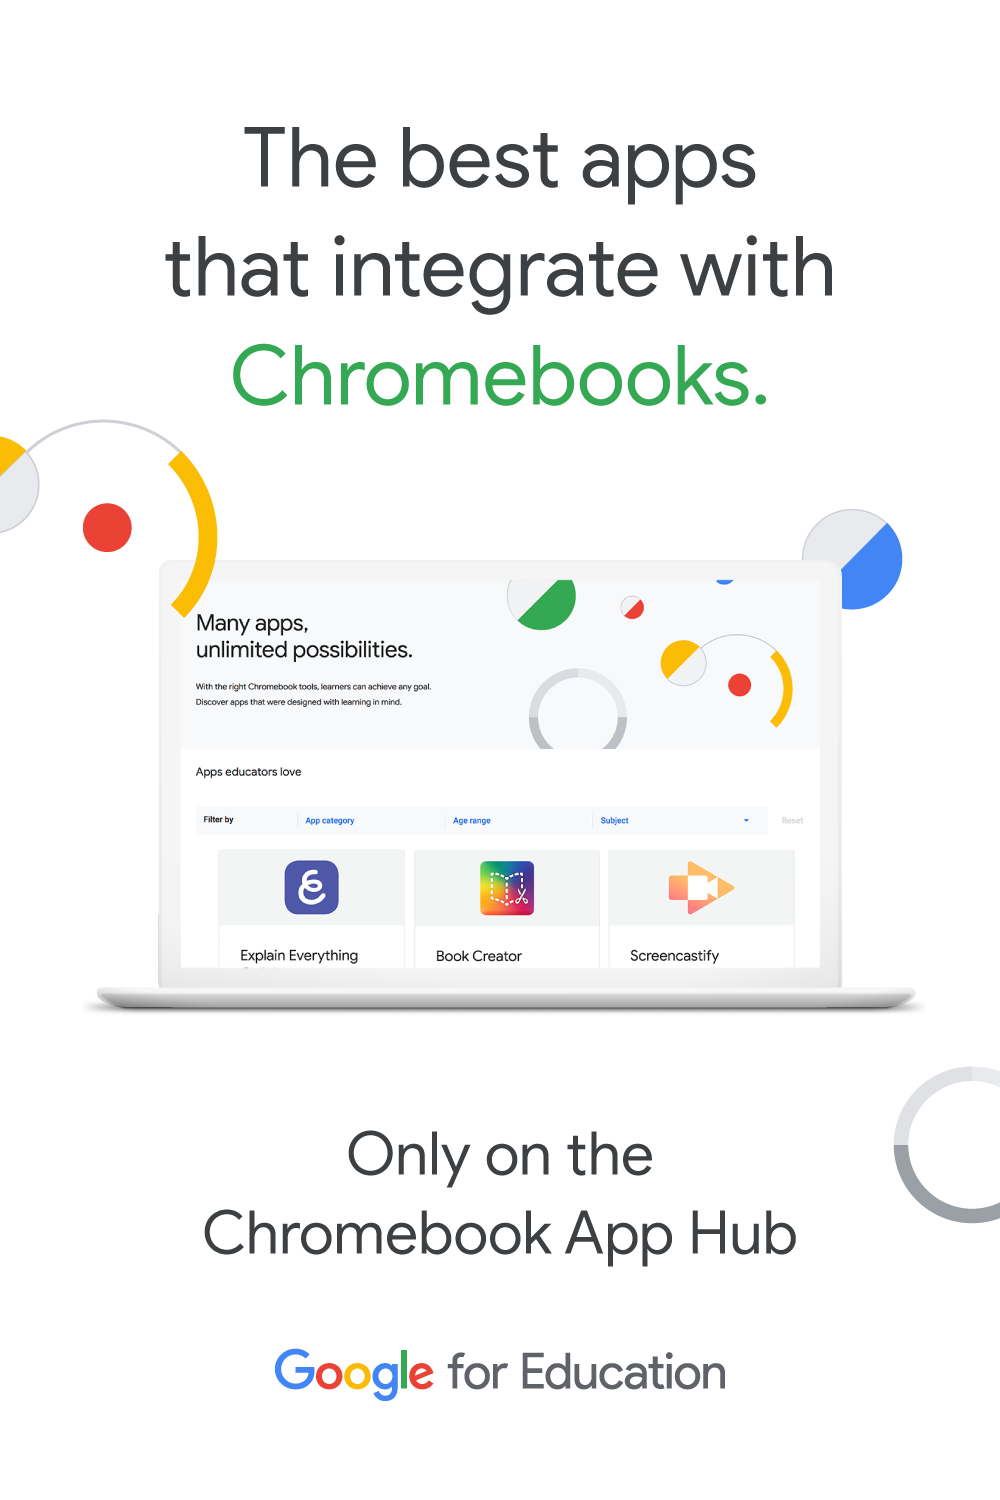 The Chromebook App Hub is the perfect resource for